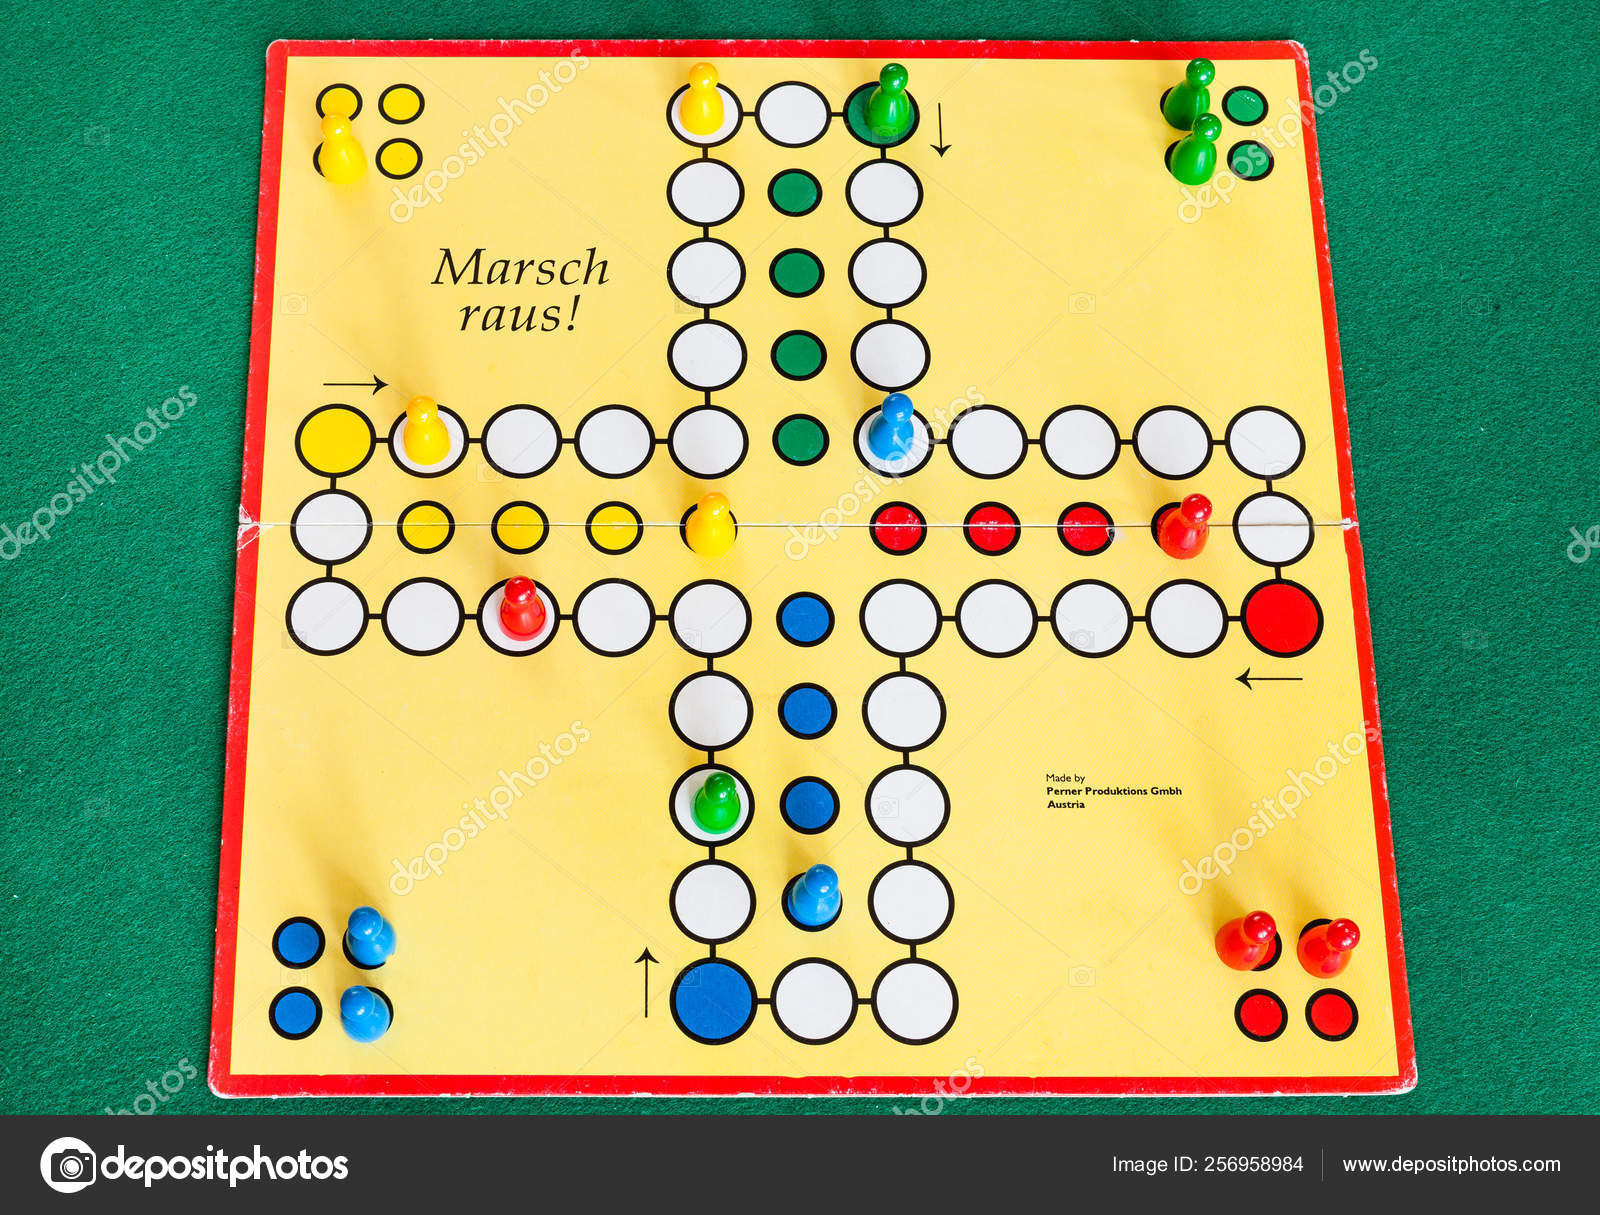 Pachisi regras tags forum 652704